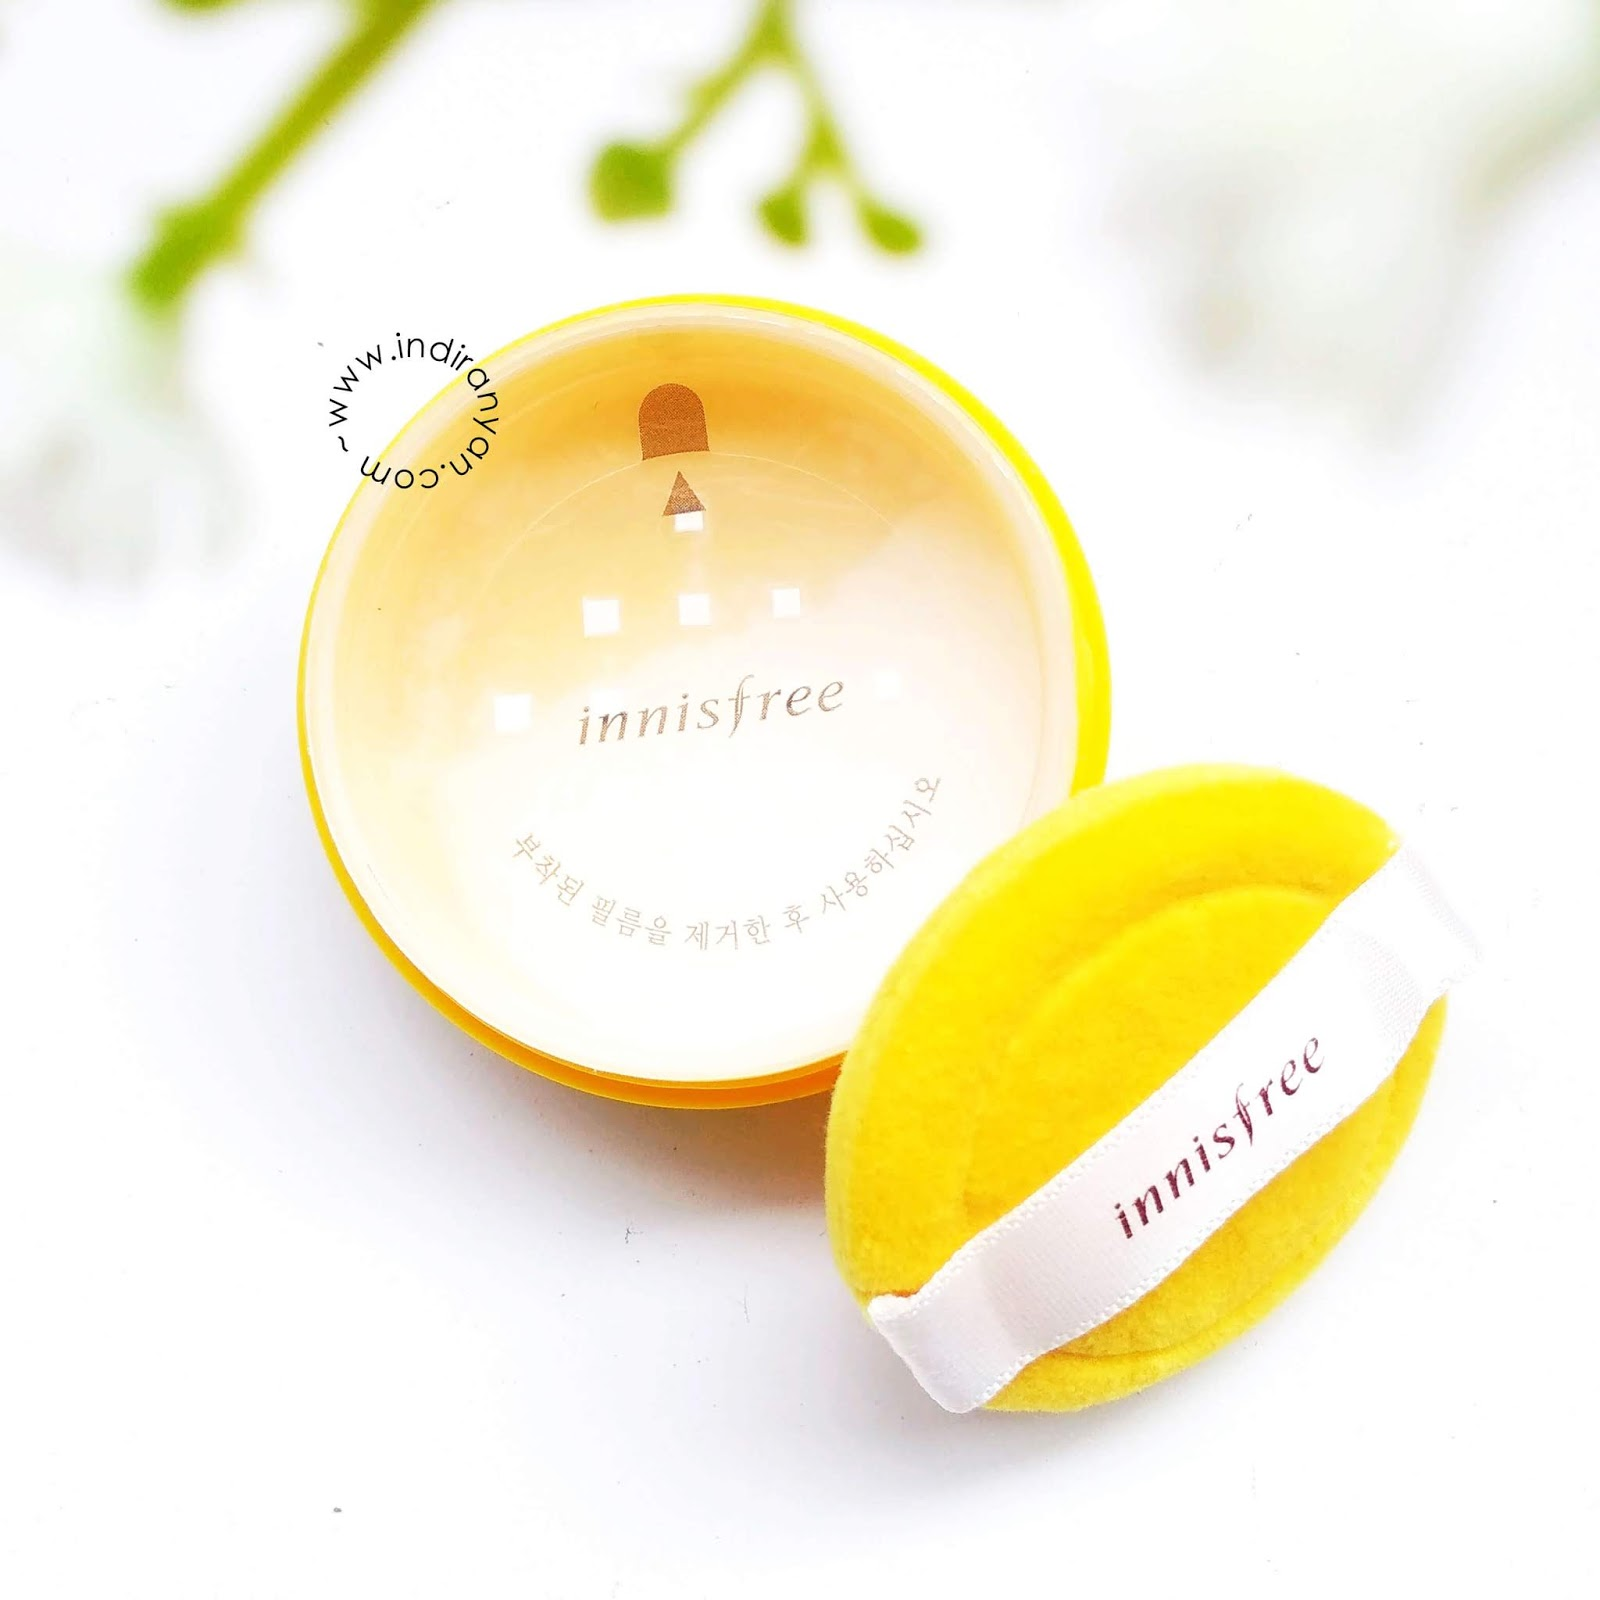 innisfree-no-sebum-mineral-powder, innisfree-no-sebum-mineral-powder-review-indonesia